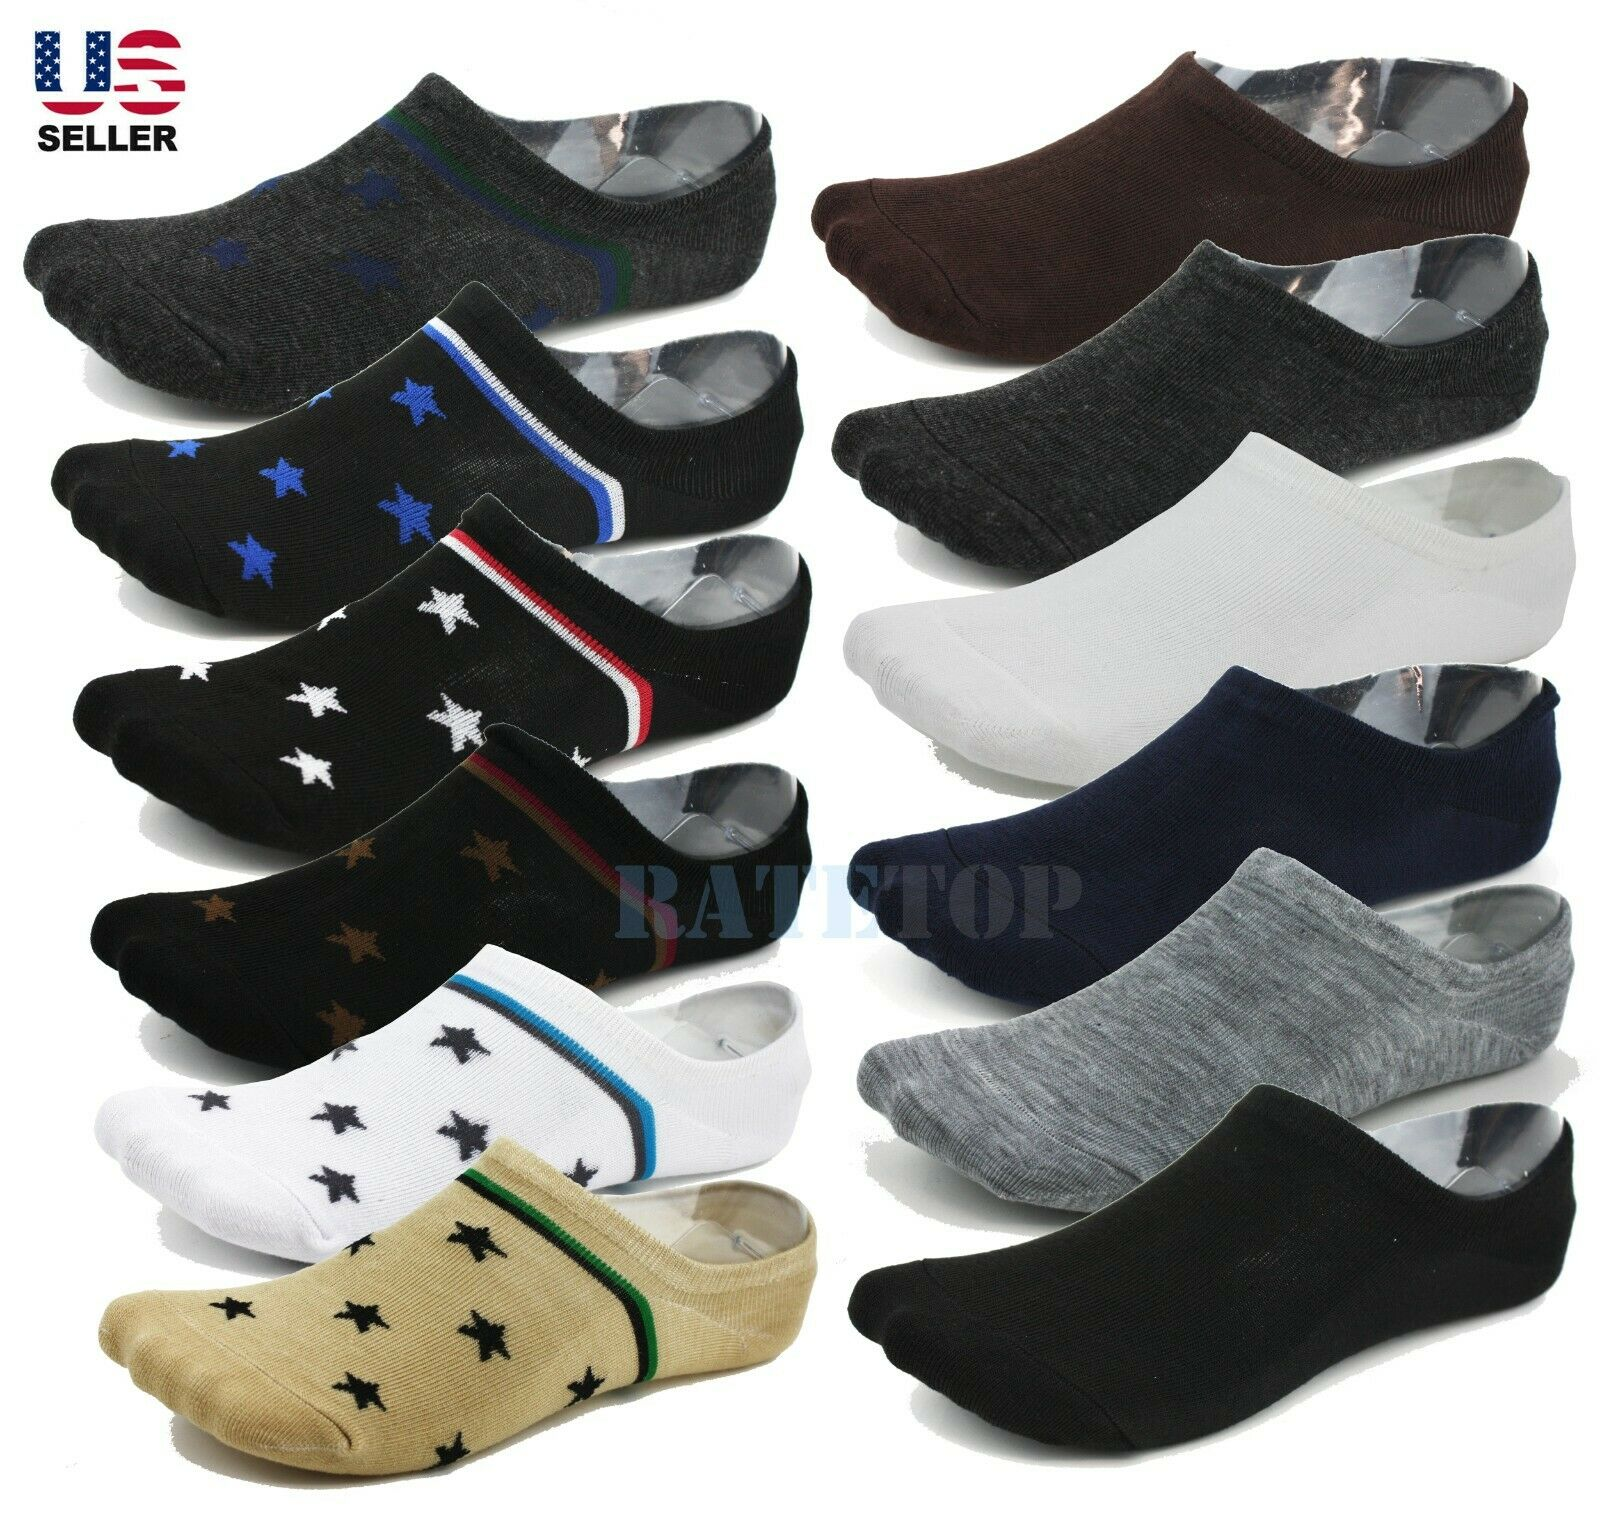 10 Pairs Men/'s Invisible No Show Nonslip Loafer Boat Ankle Low Cut Cotton Socks